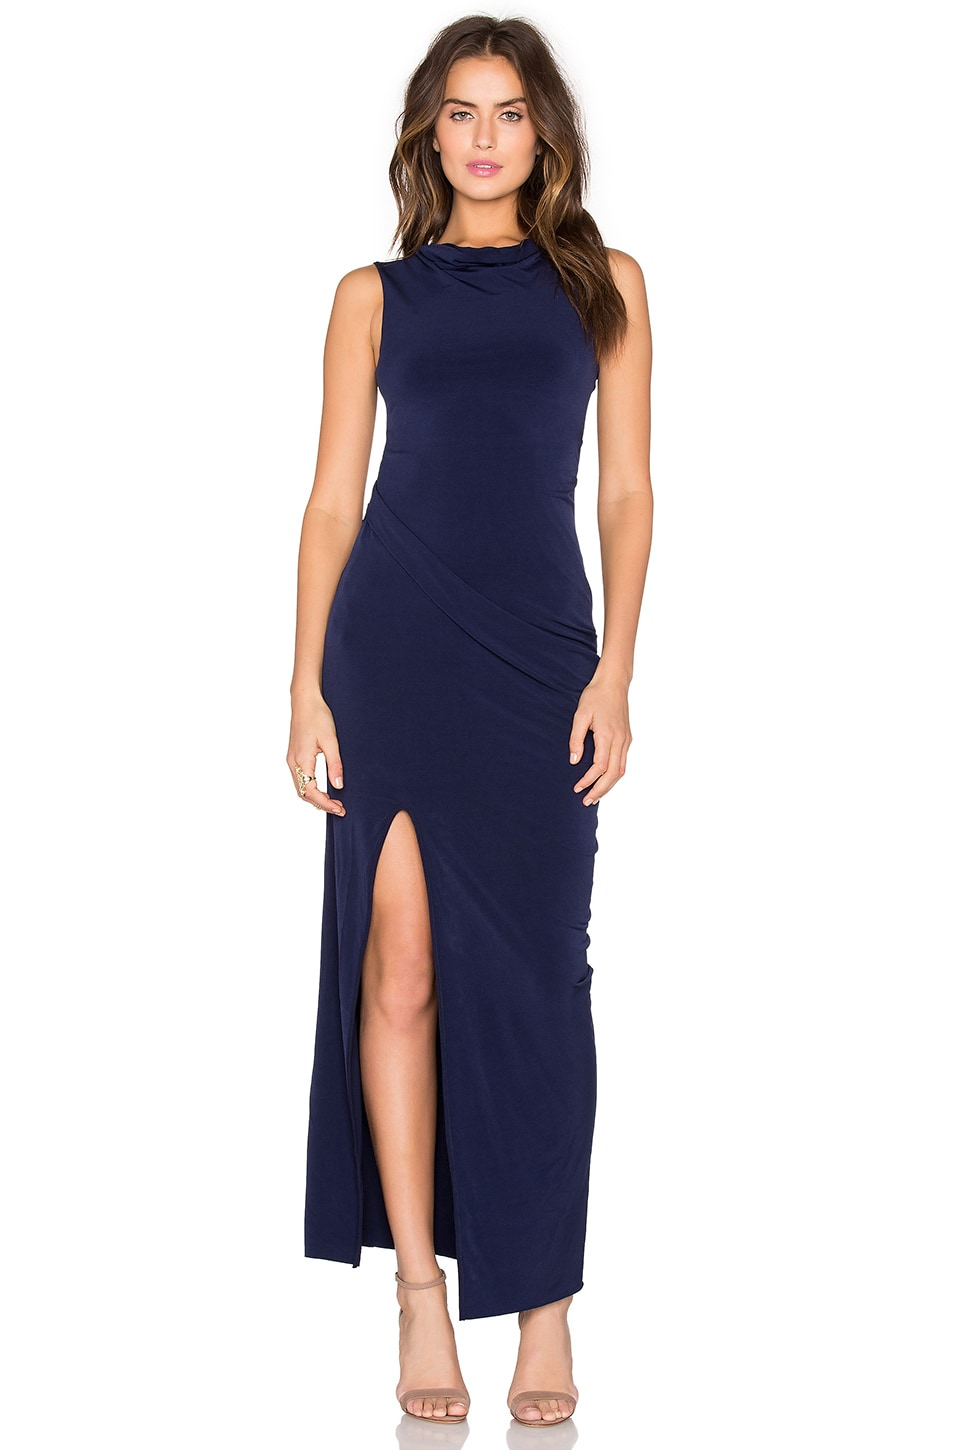 Bobi BLACK Liquid Jersey Cowl Neck Maxi Dress in Blue